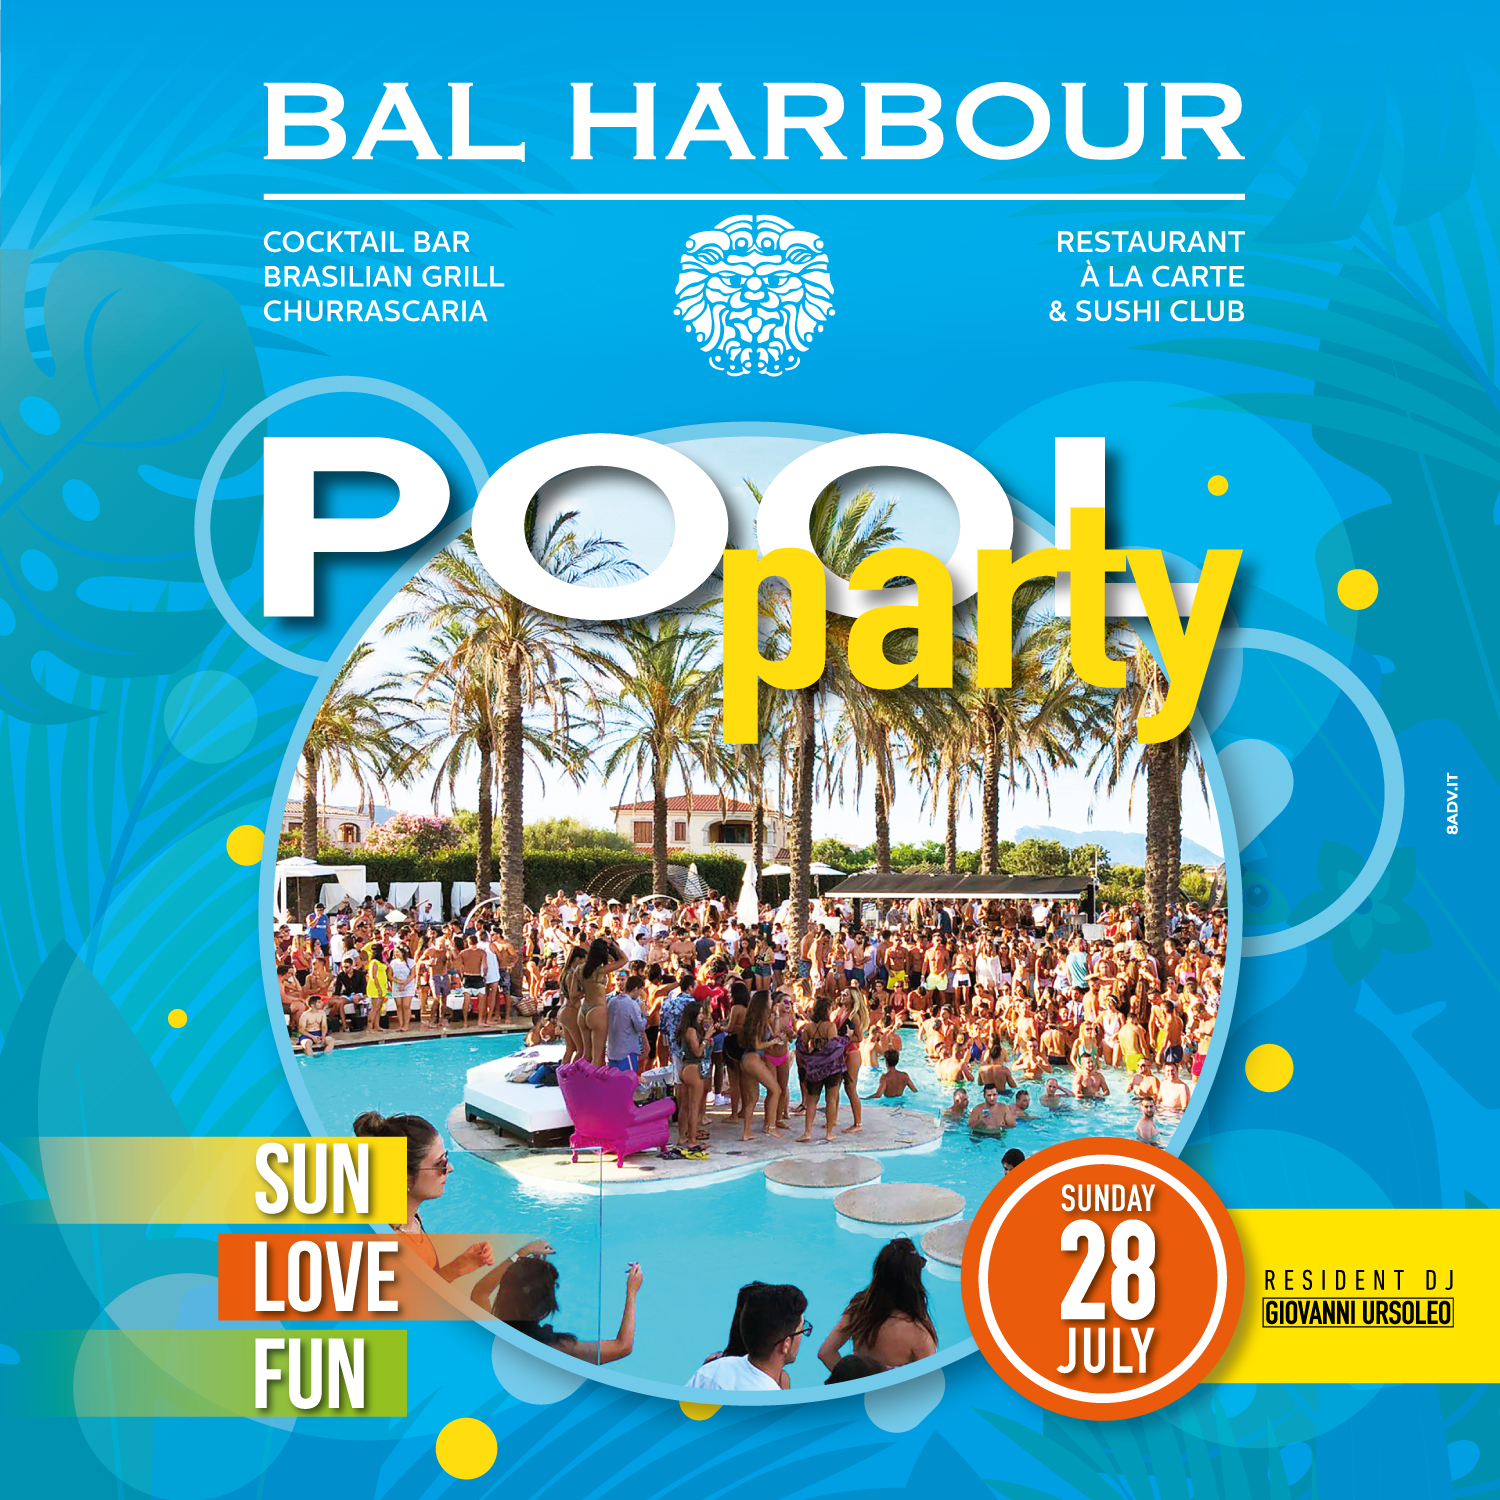 pool party bal harbour san teodoro summer sardegna